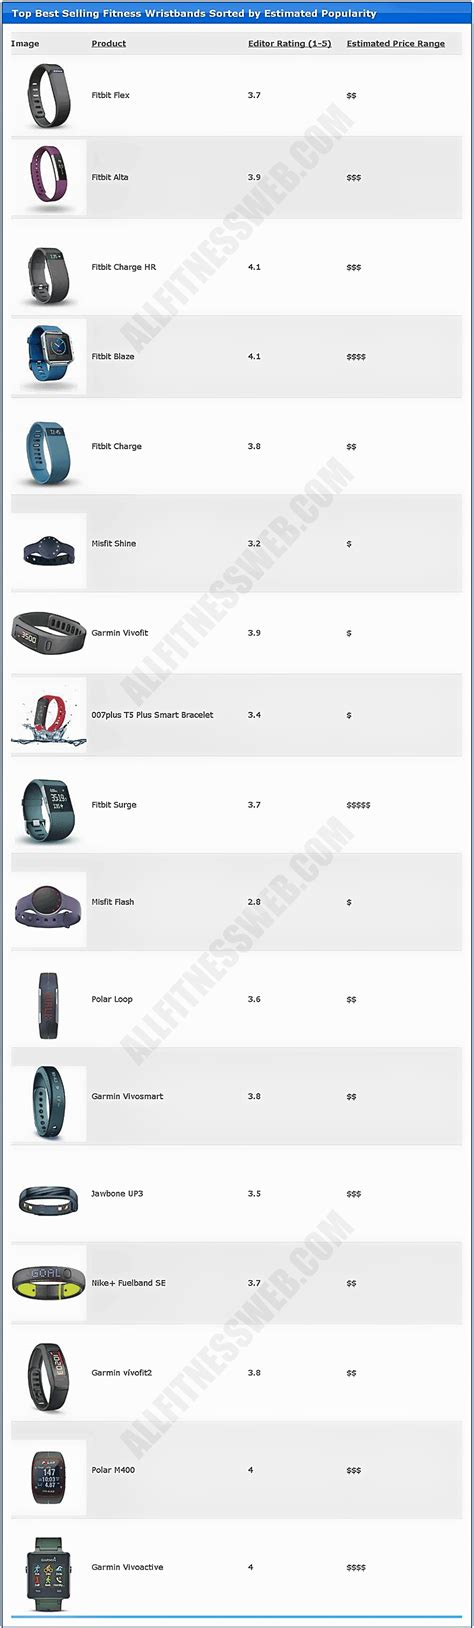 the best fitness band best fitness band comparison and reviews